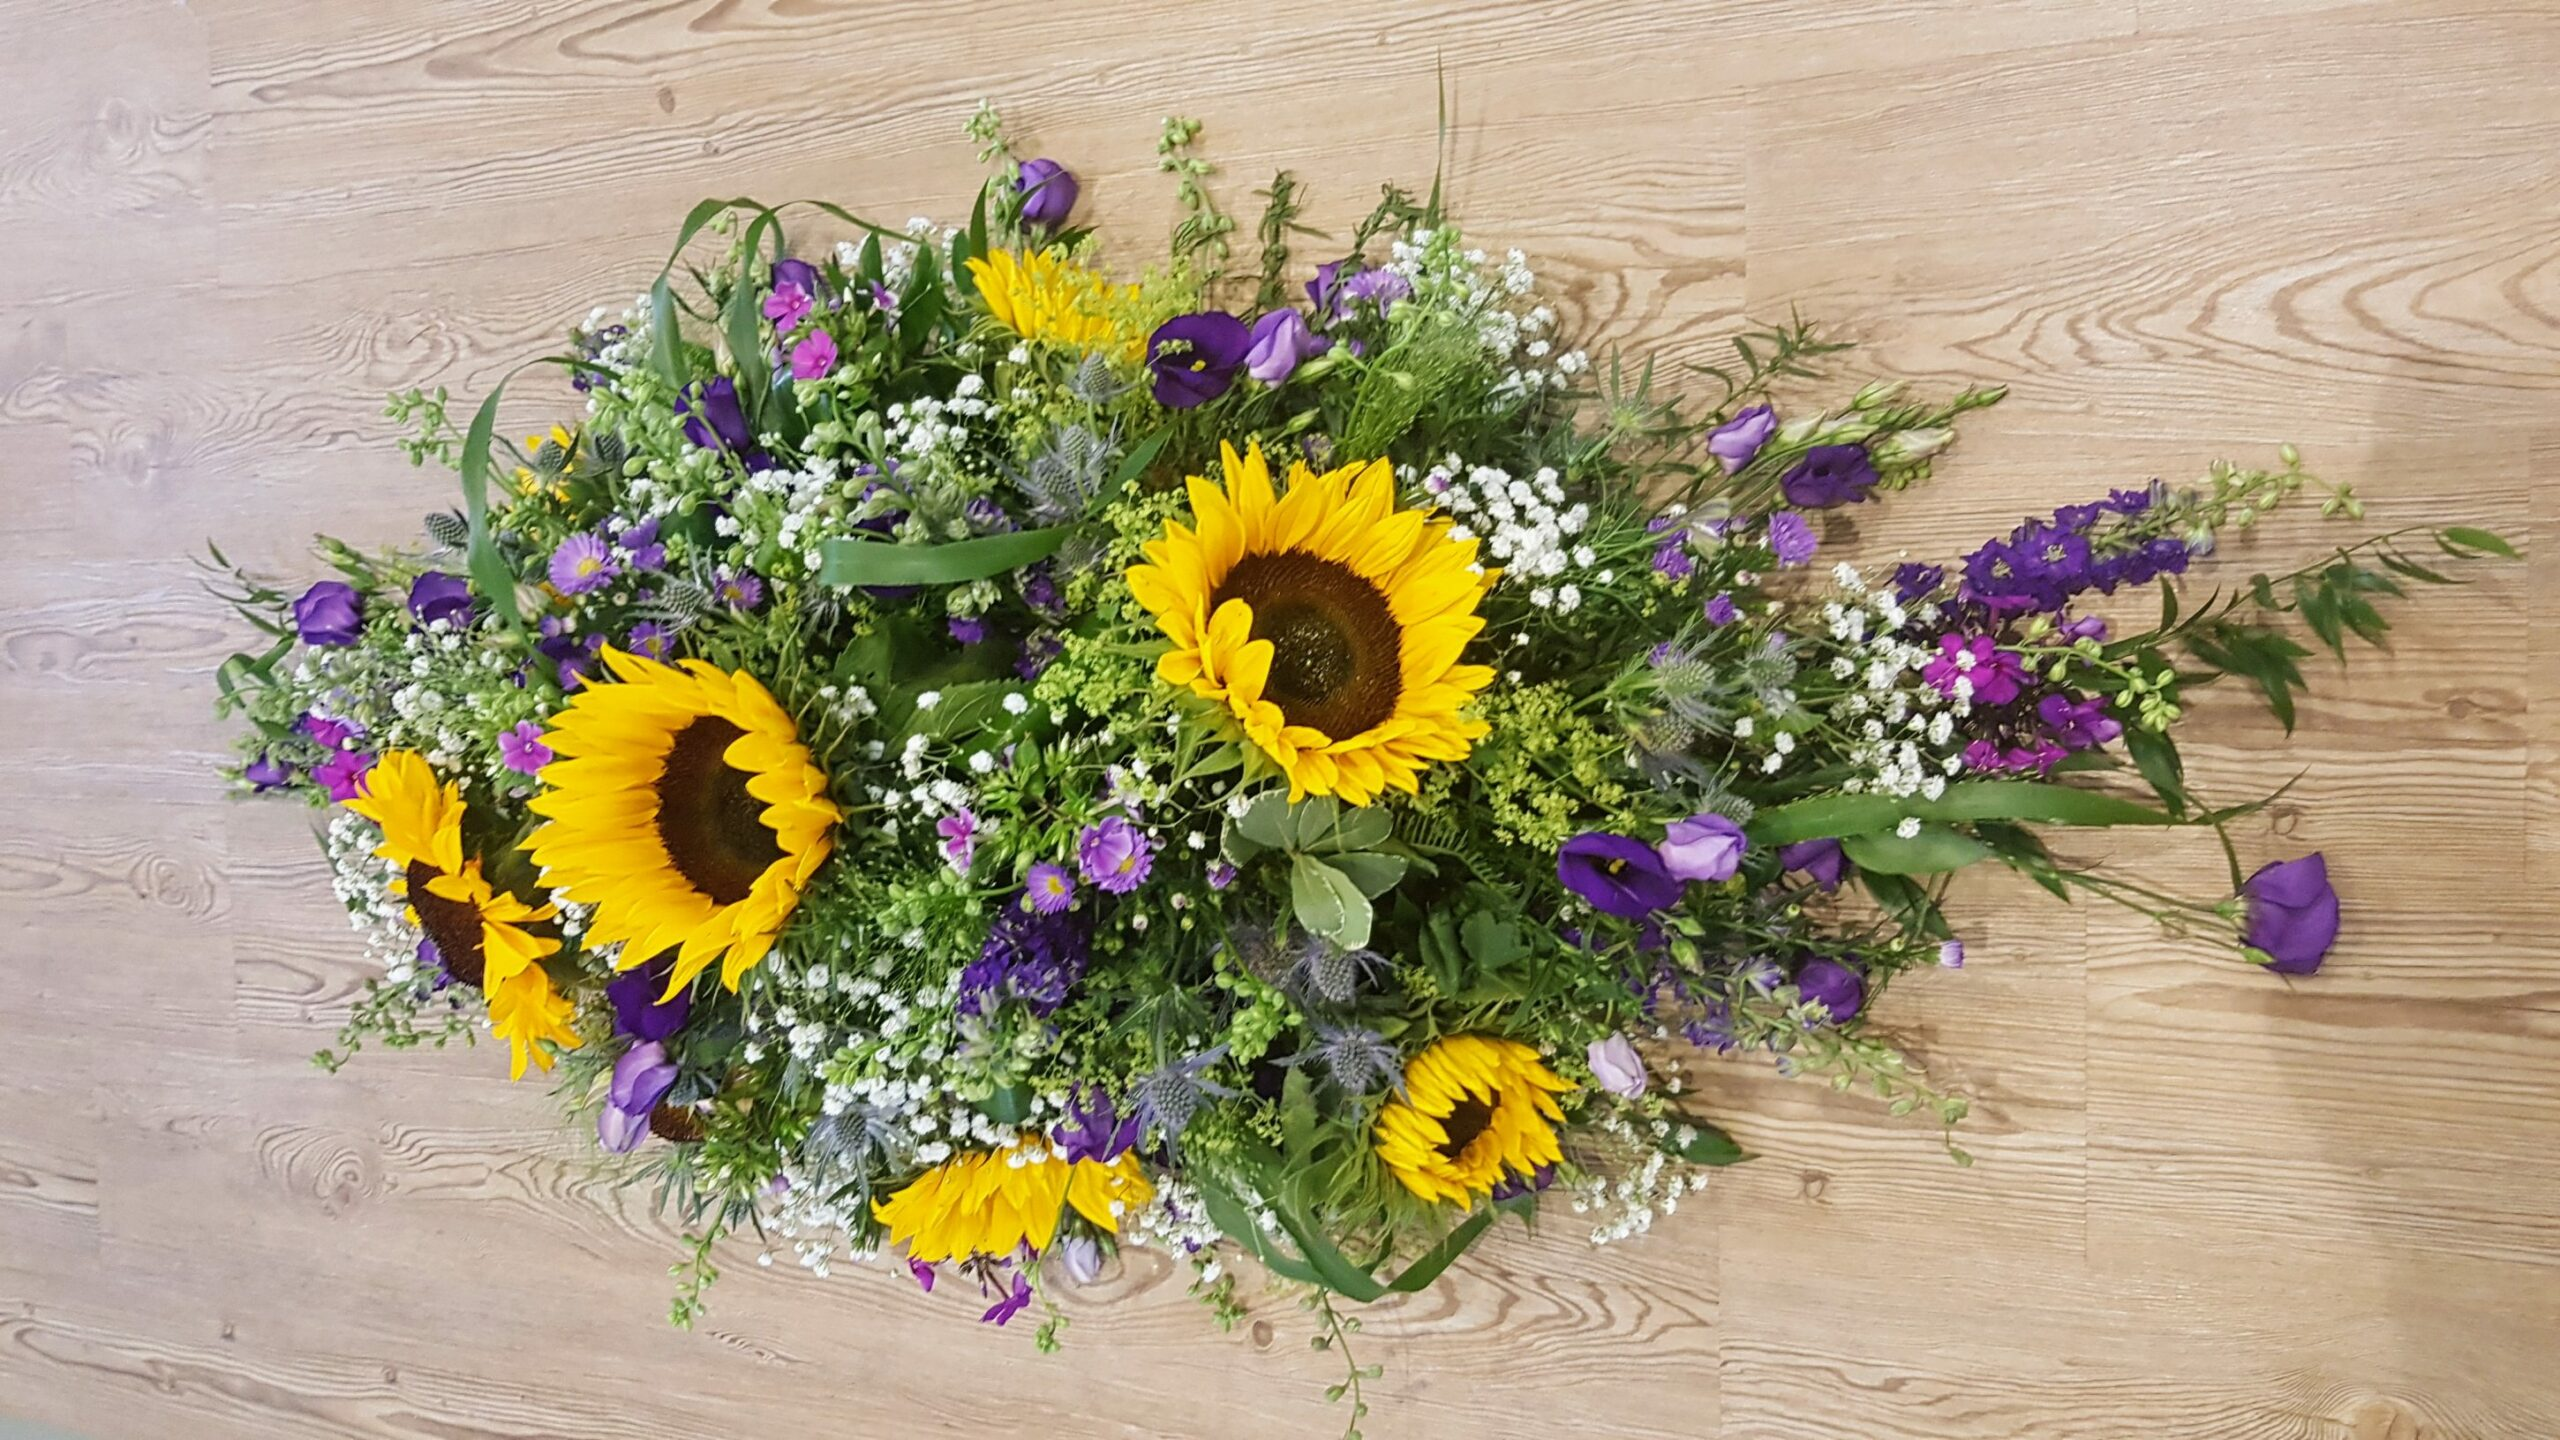 Sunflowers and other flowers in a bouquet